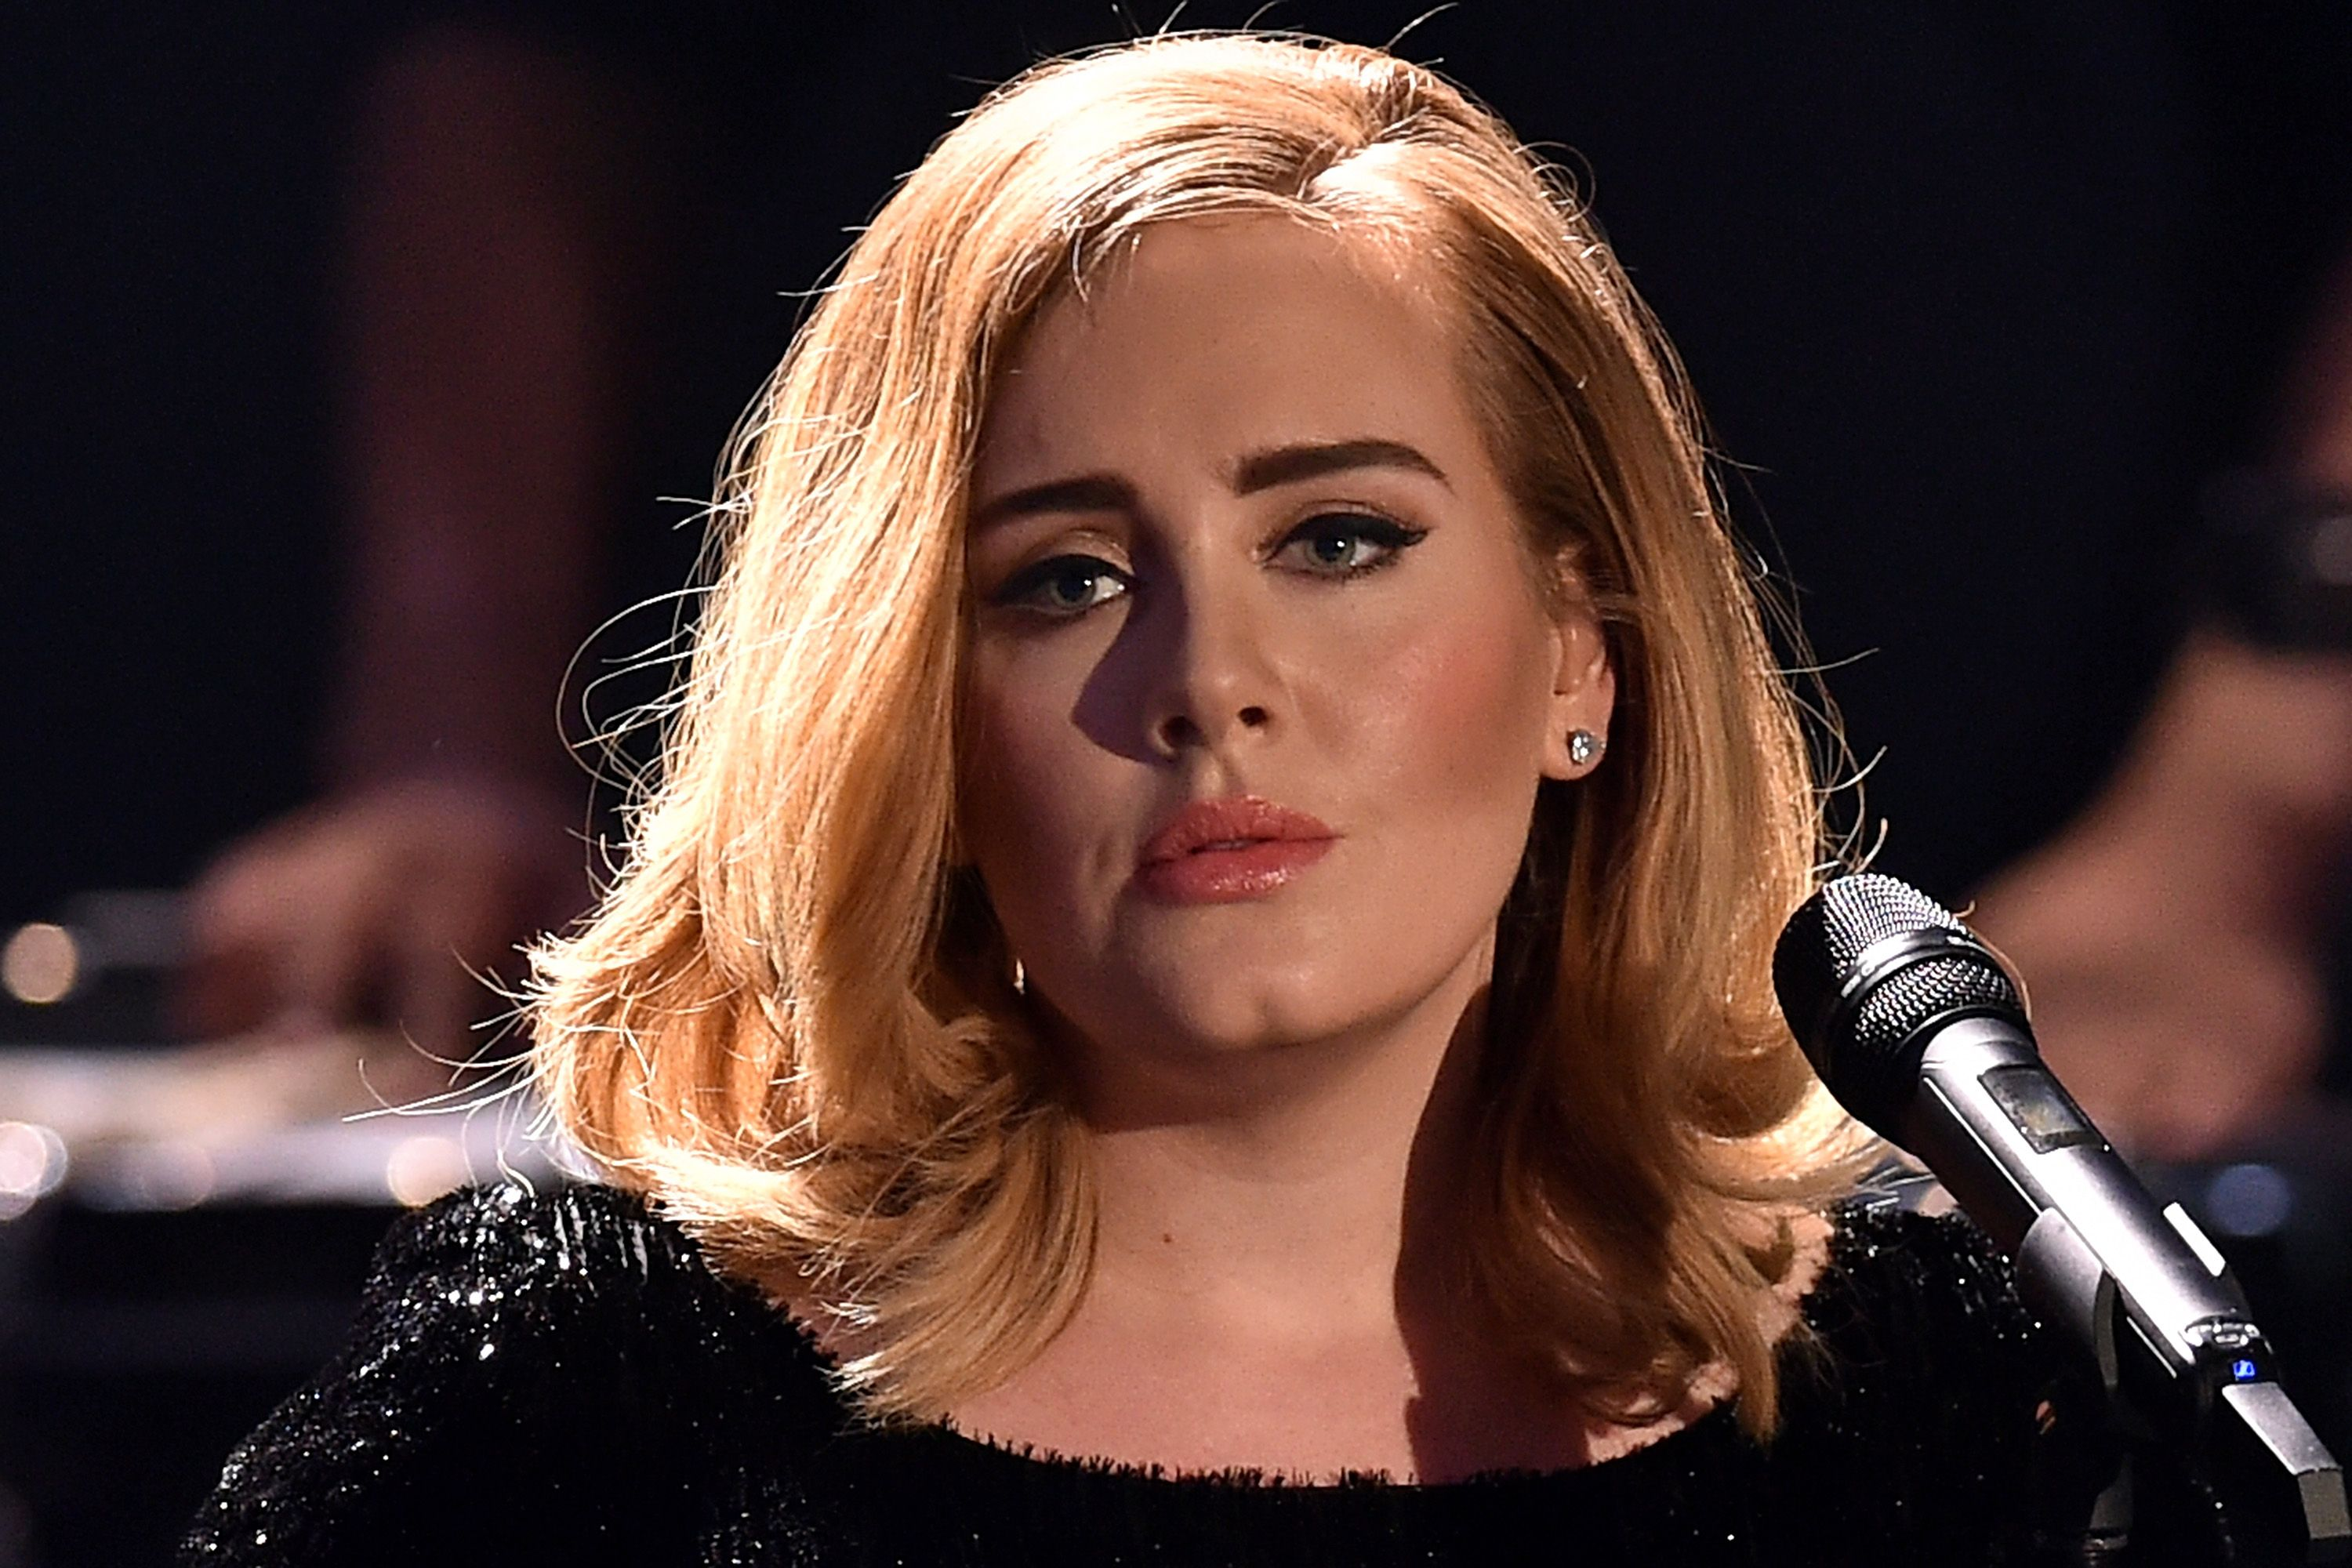 Adele performs live on stage during a television show on December 6, 2015 in Cologne, Germany. | Source: Getty Images